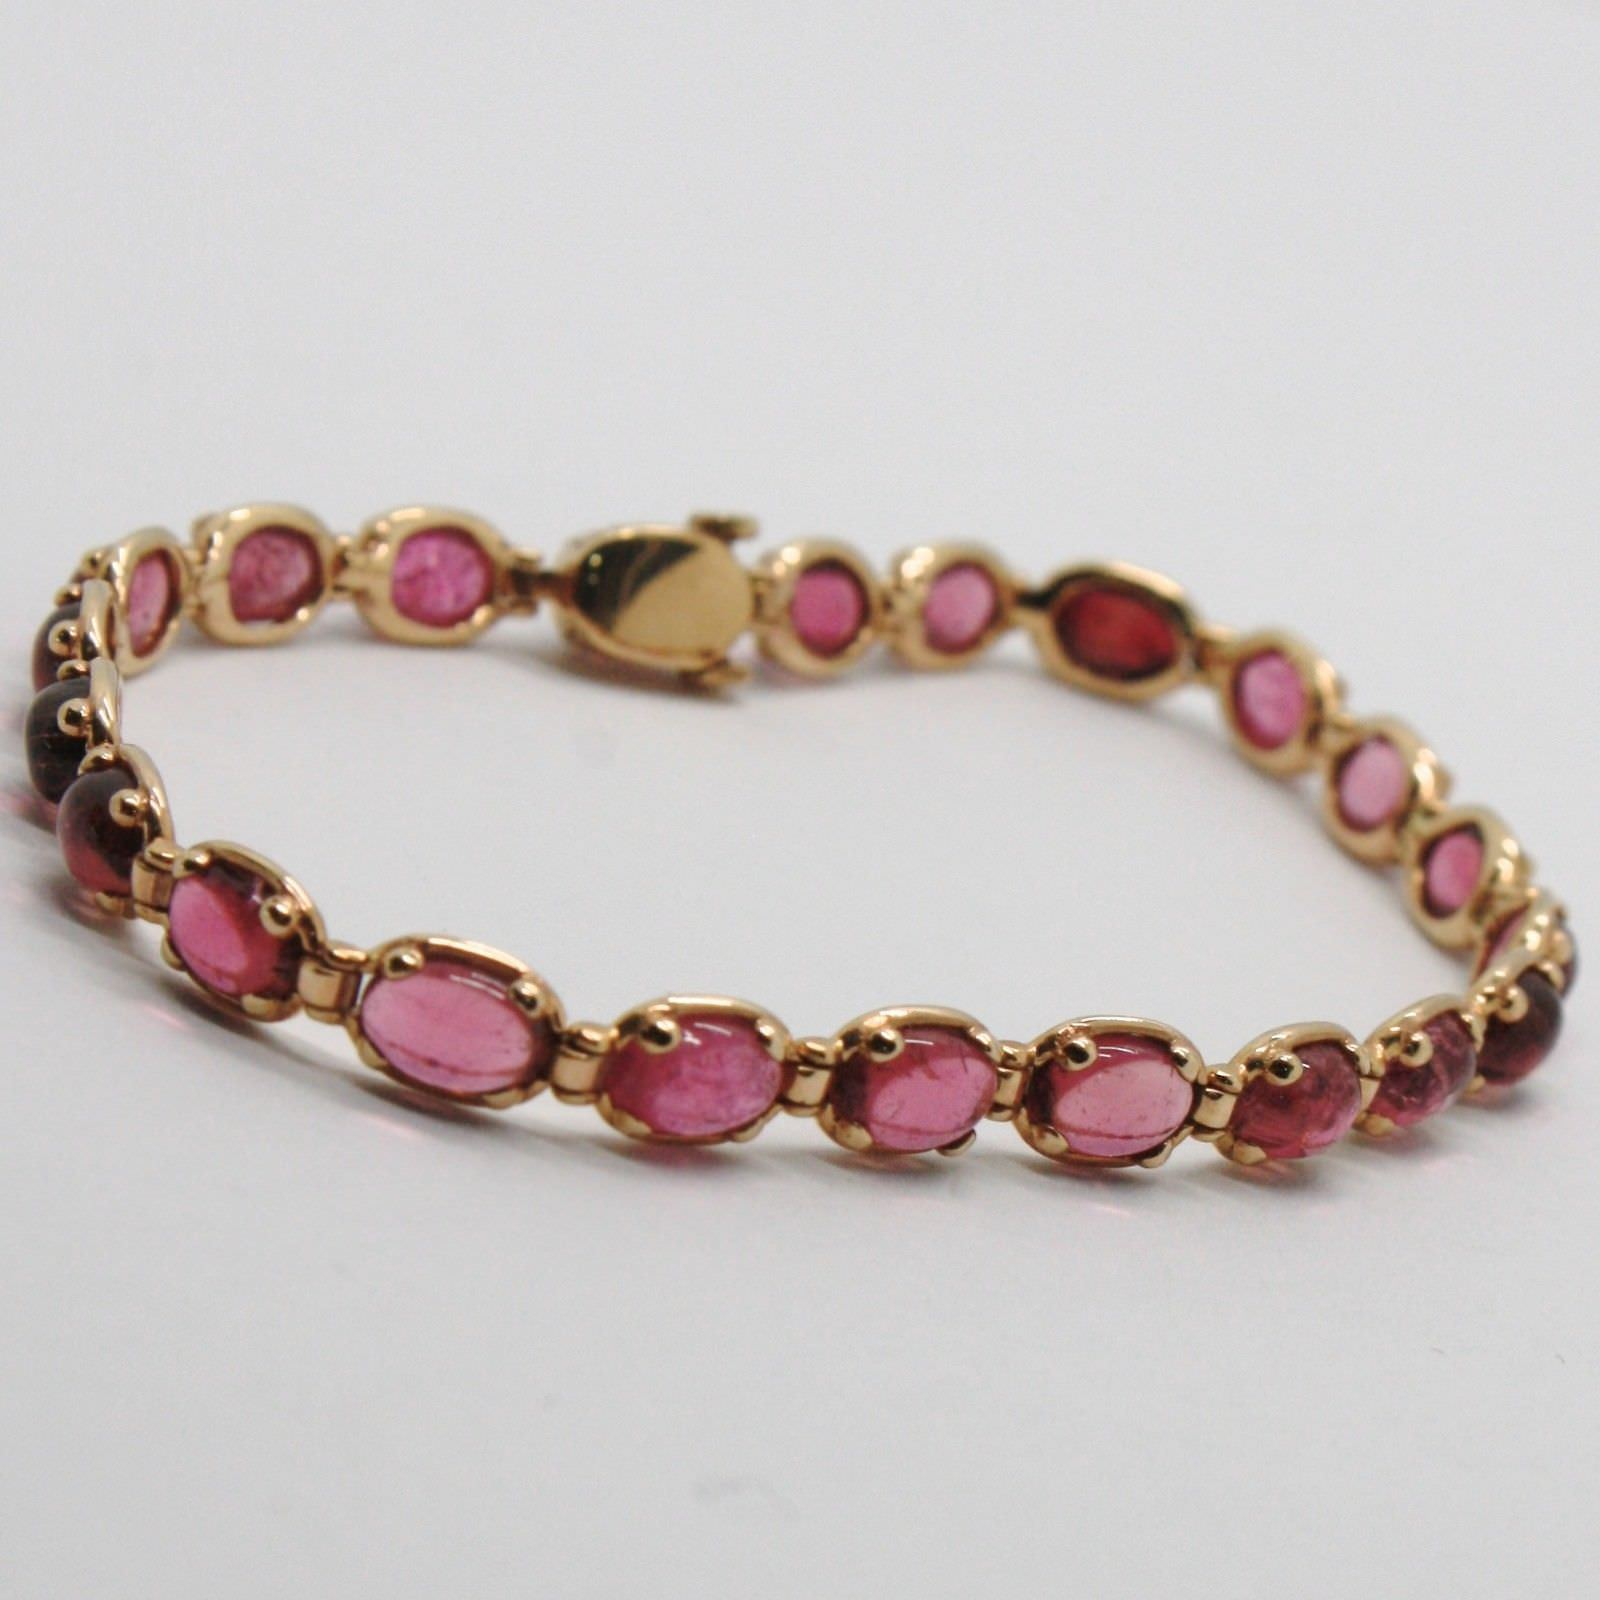 BRACELET OR ROSE 9K TYPE TENNIS AVEC TOURMALINE ROSE NATUREL MADE IN ITALY